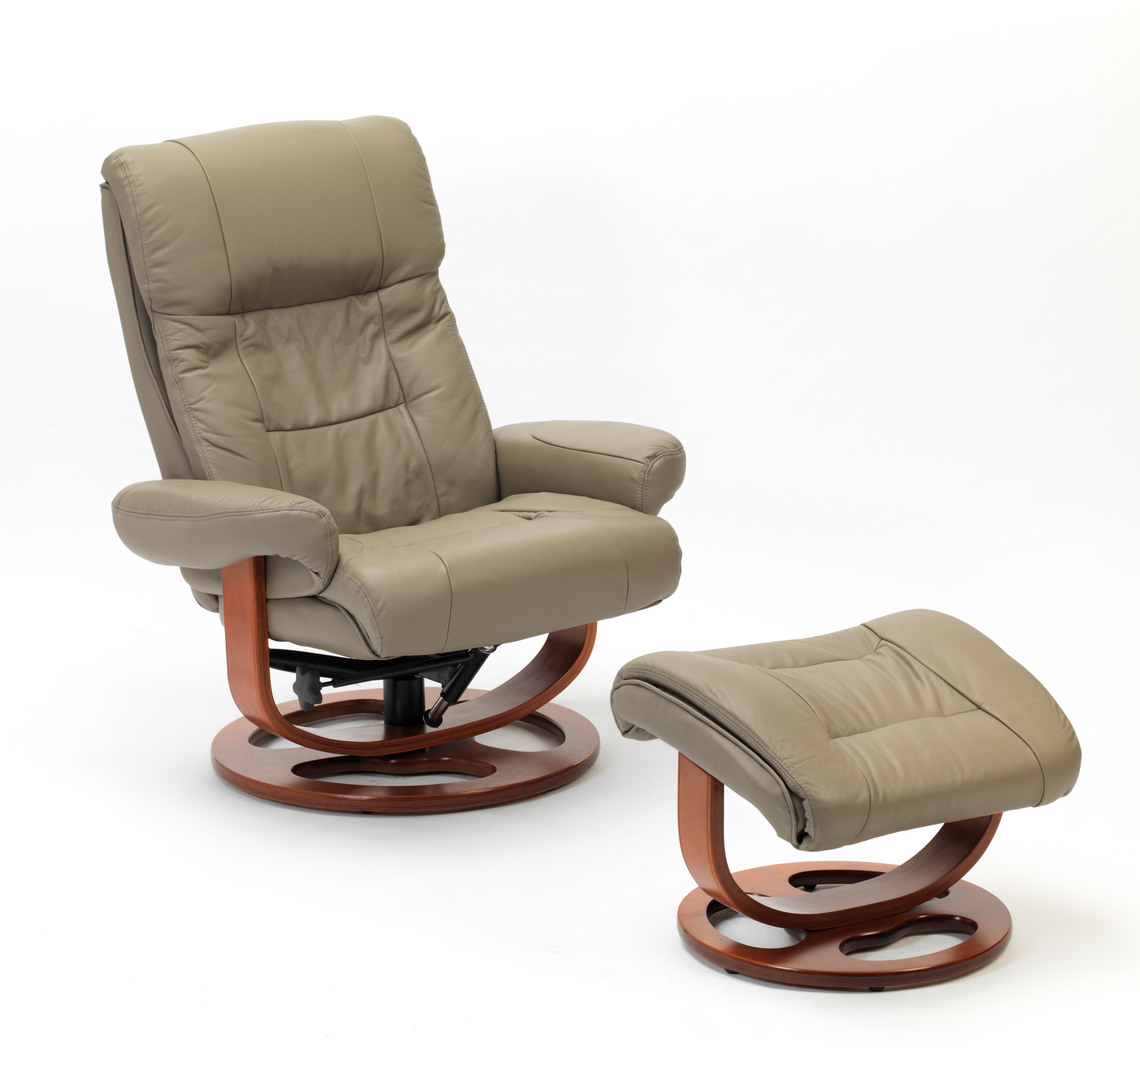 furniture | swivel-recliners